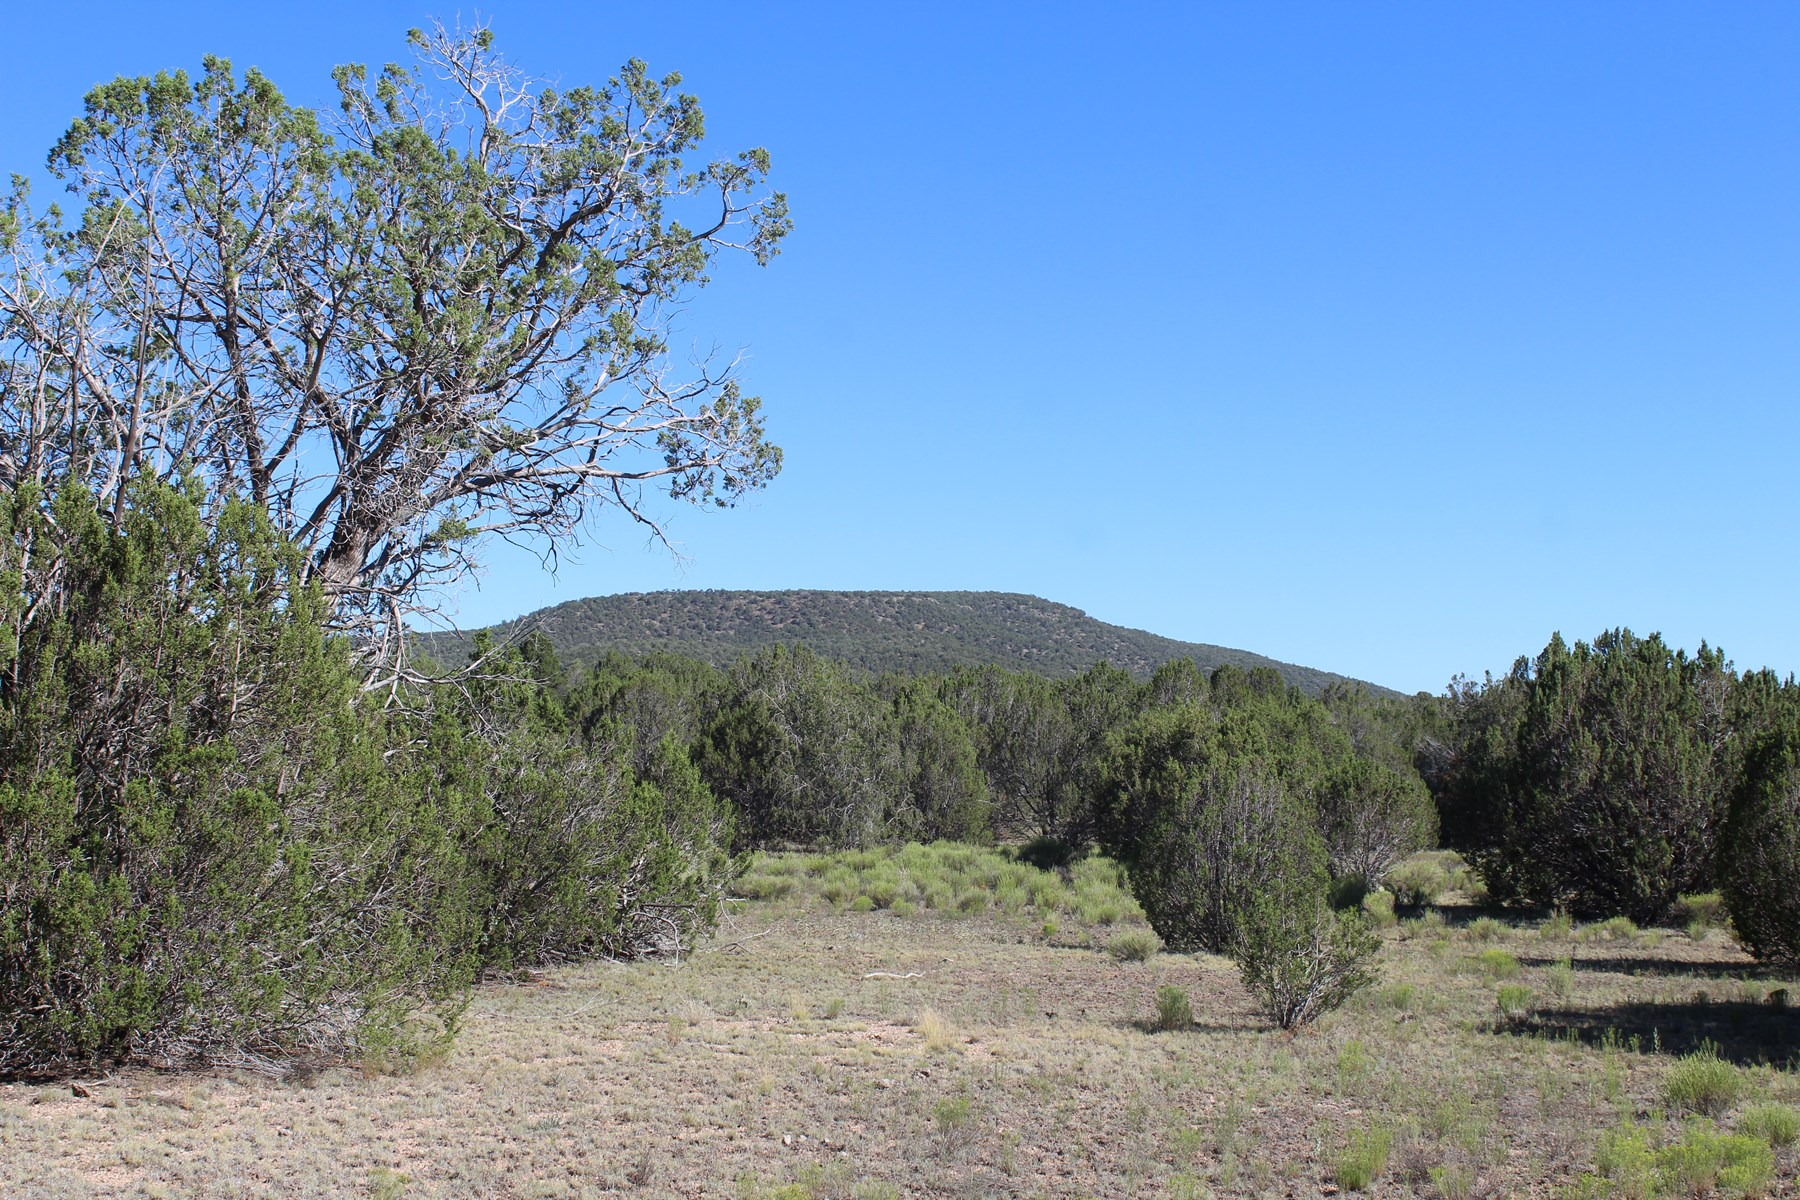 Arizona Mountain Property For Sale in Seligman